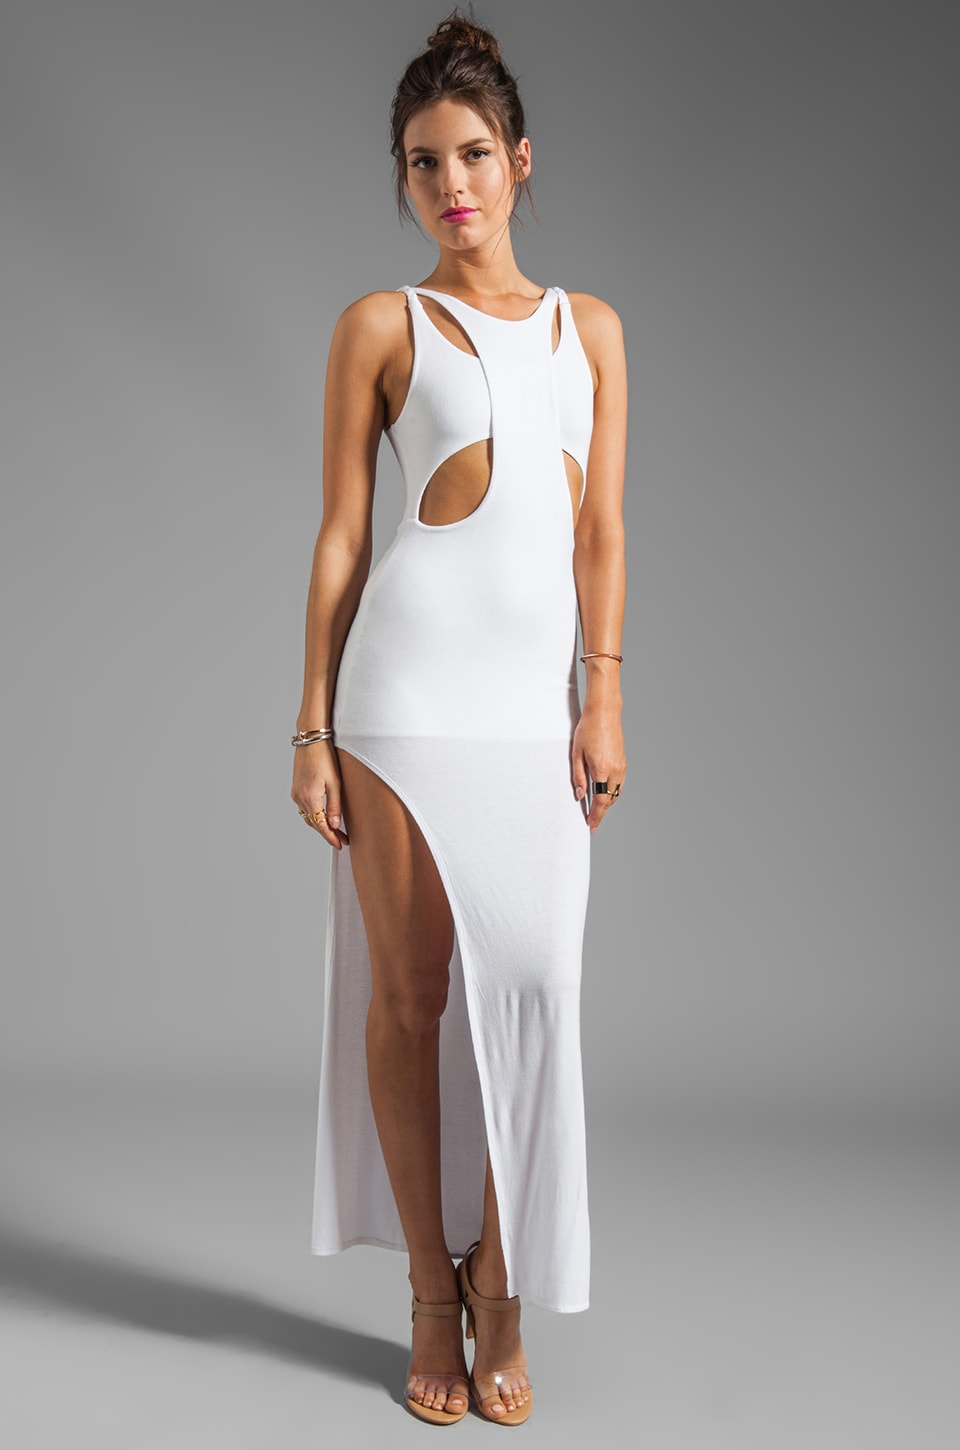 bless'ed are the meek EXCLUSIVE Holey Smoke Dress in White